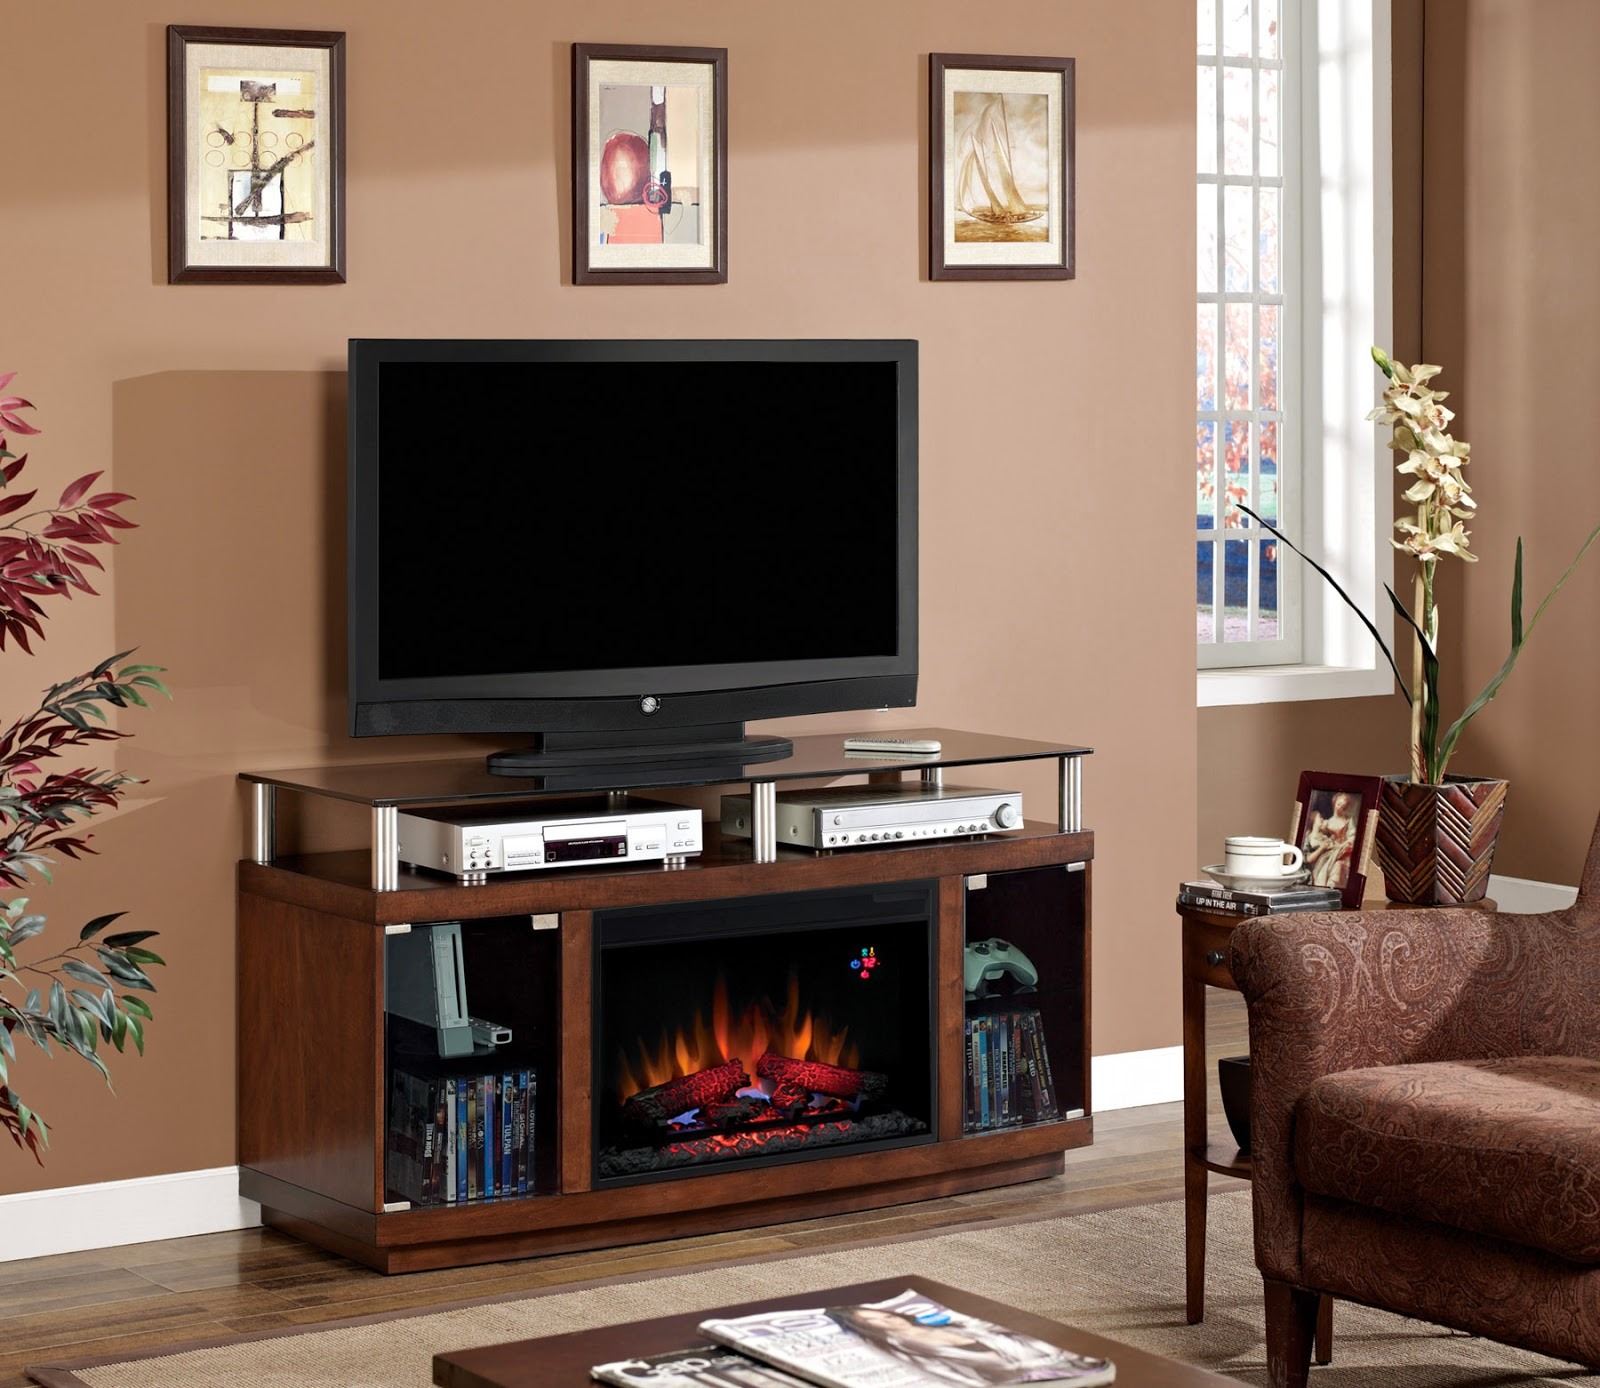 Home Priority Impressing Electric Fireplace Tv Stand For Impressing Room